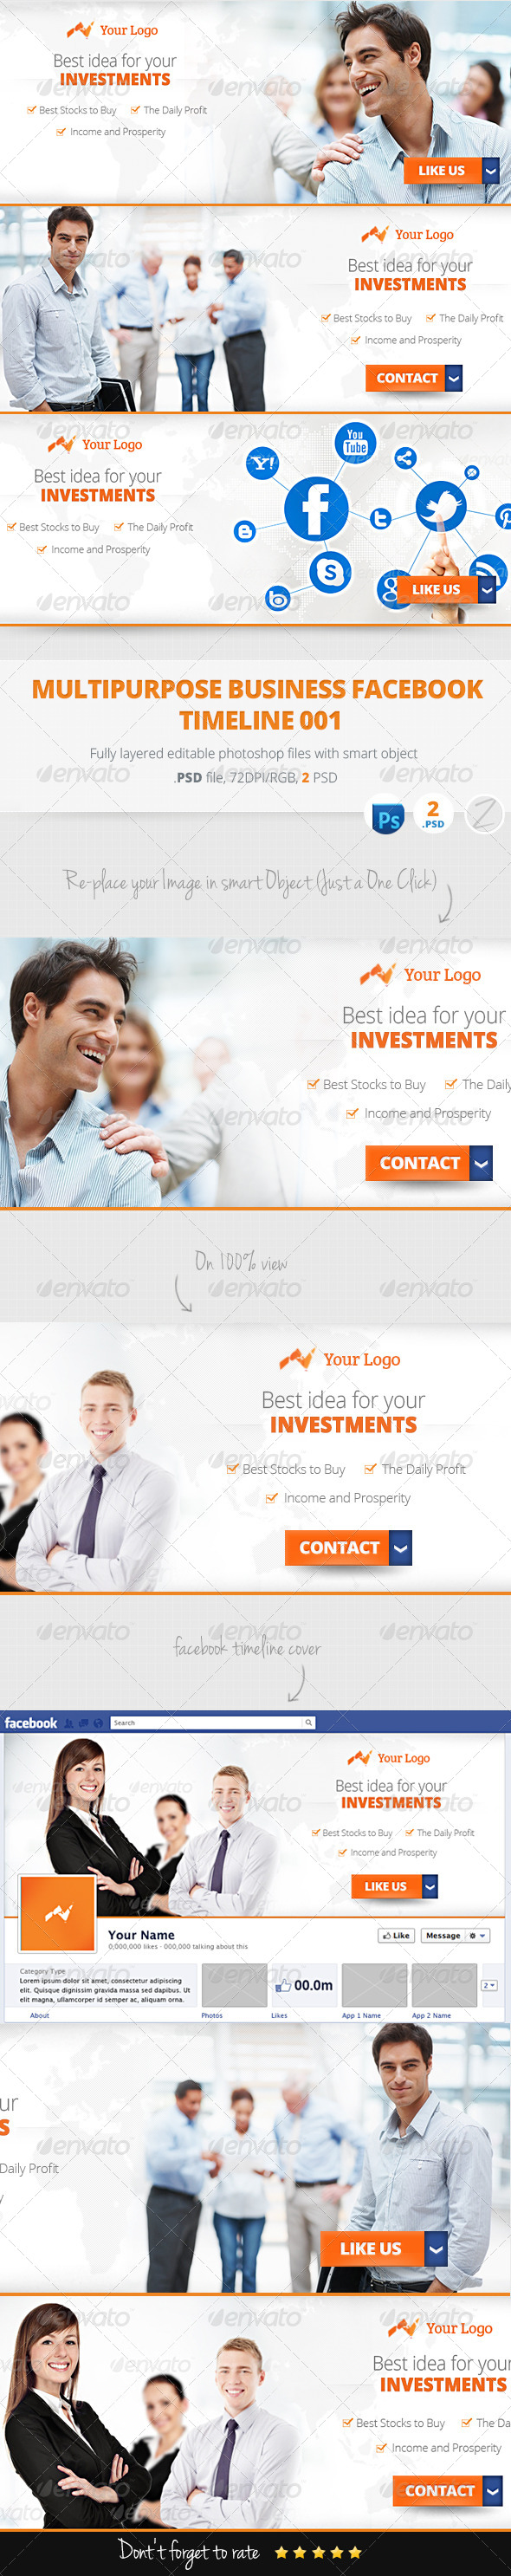 GraphicRiver Multipurpose Business Marketing Facebook Cover 001 5965151